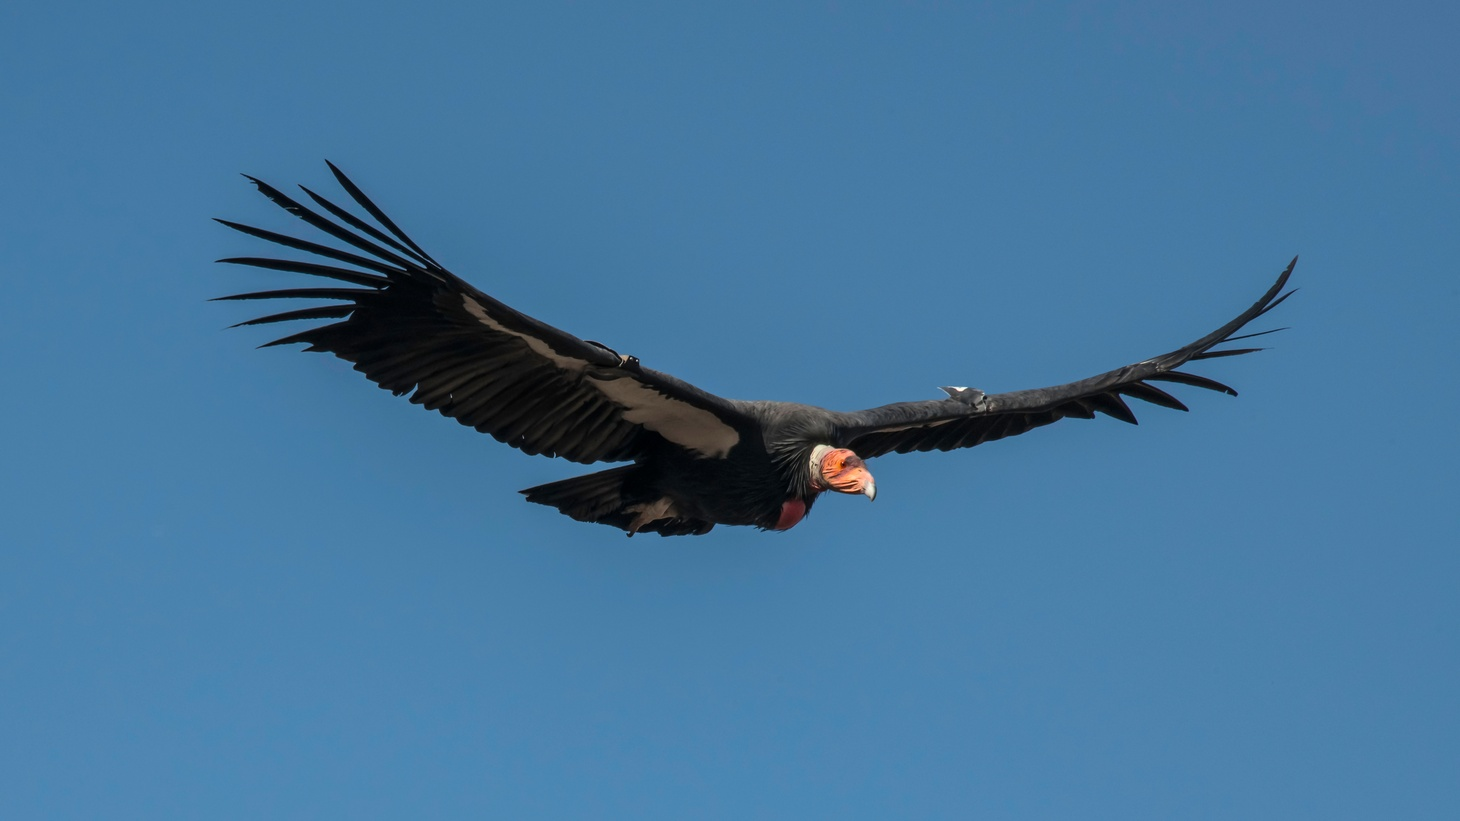 The California condor is the largest bird in North America. A flock of them invaded the home of a woman who lives in the Tehachapi Mountains.